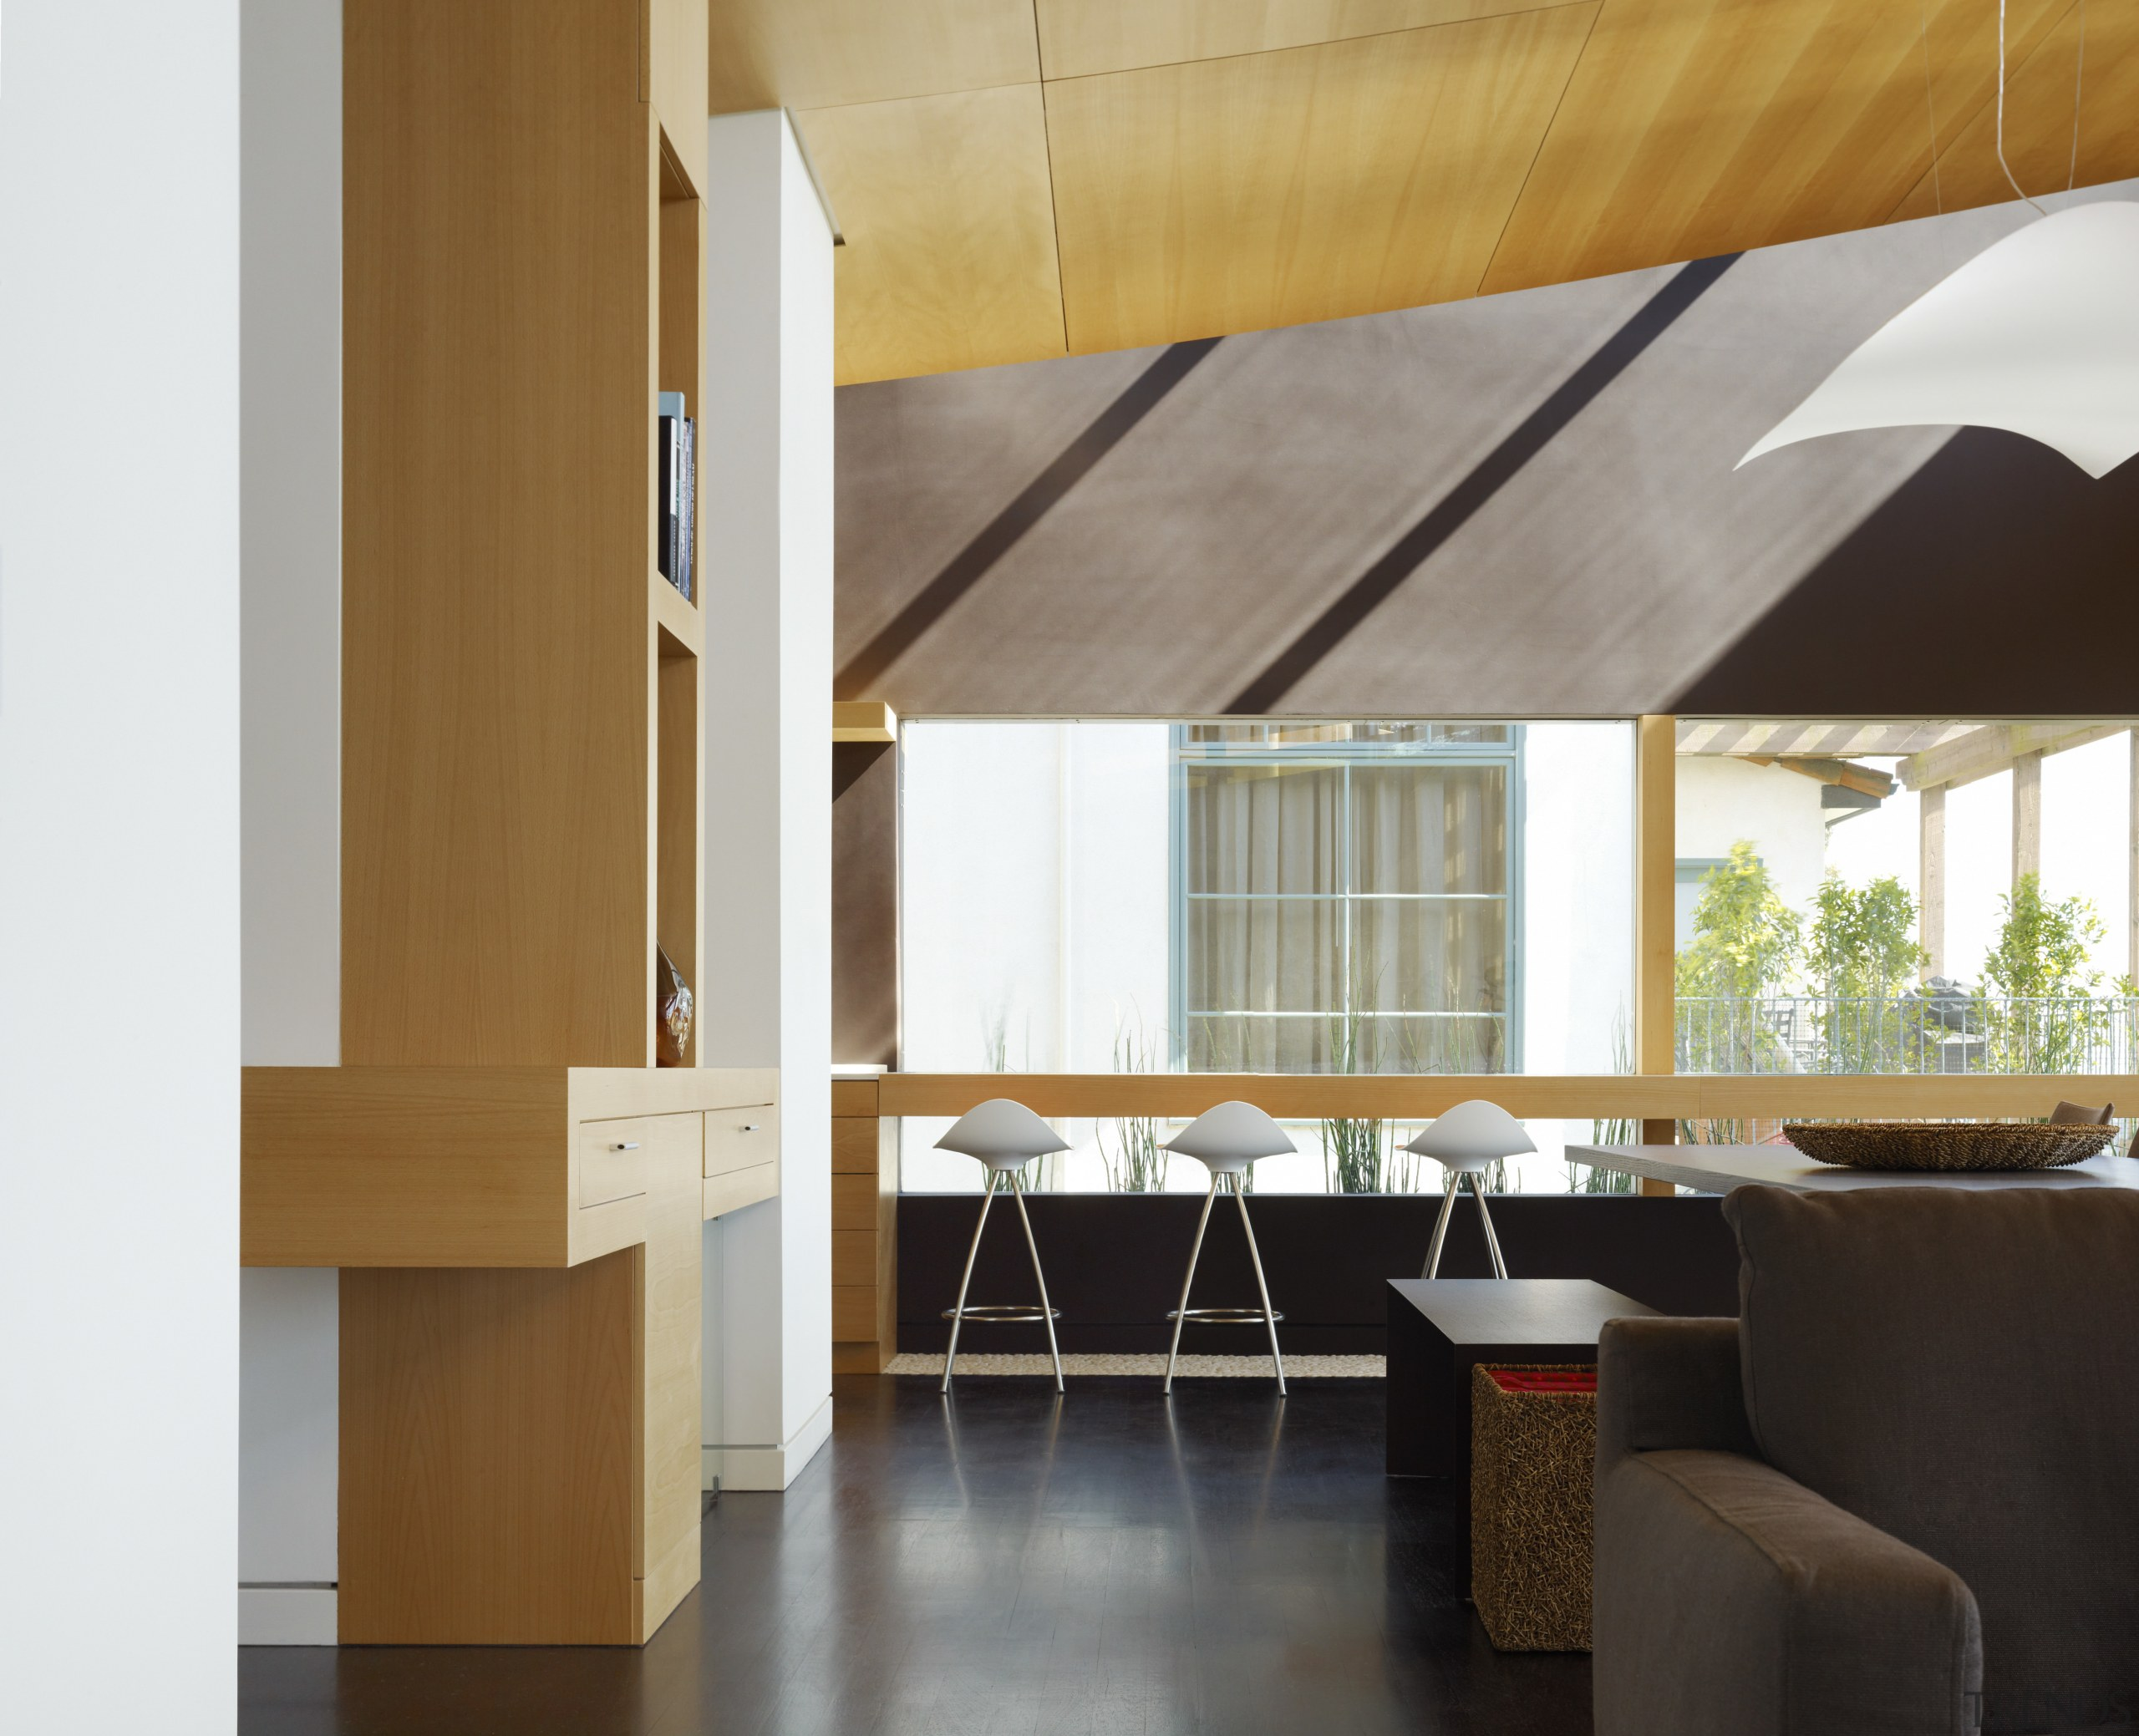 View of the breakfast bar with bar stools, architecture, ceiling, daylighting, furniture, interior design, table, gray